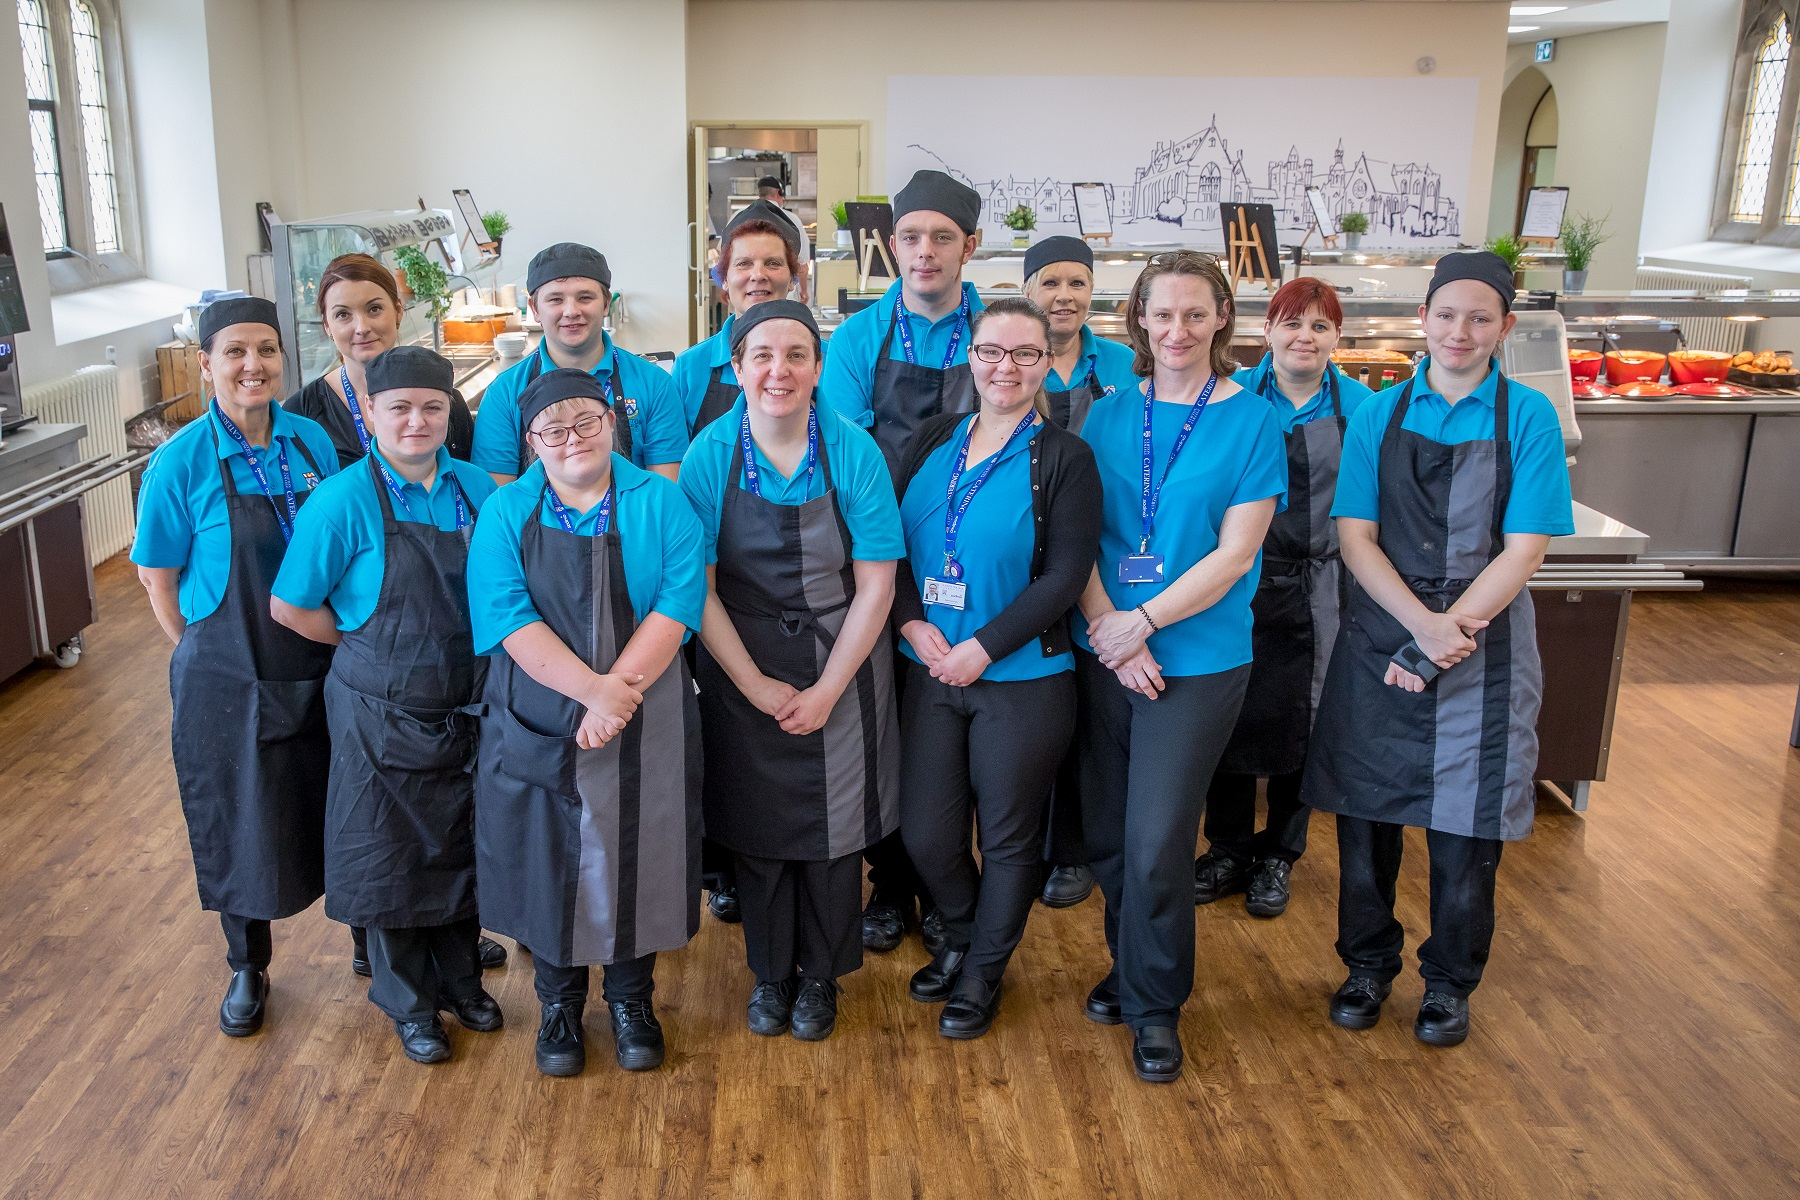 clifton_college_catering_team